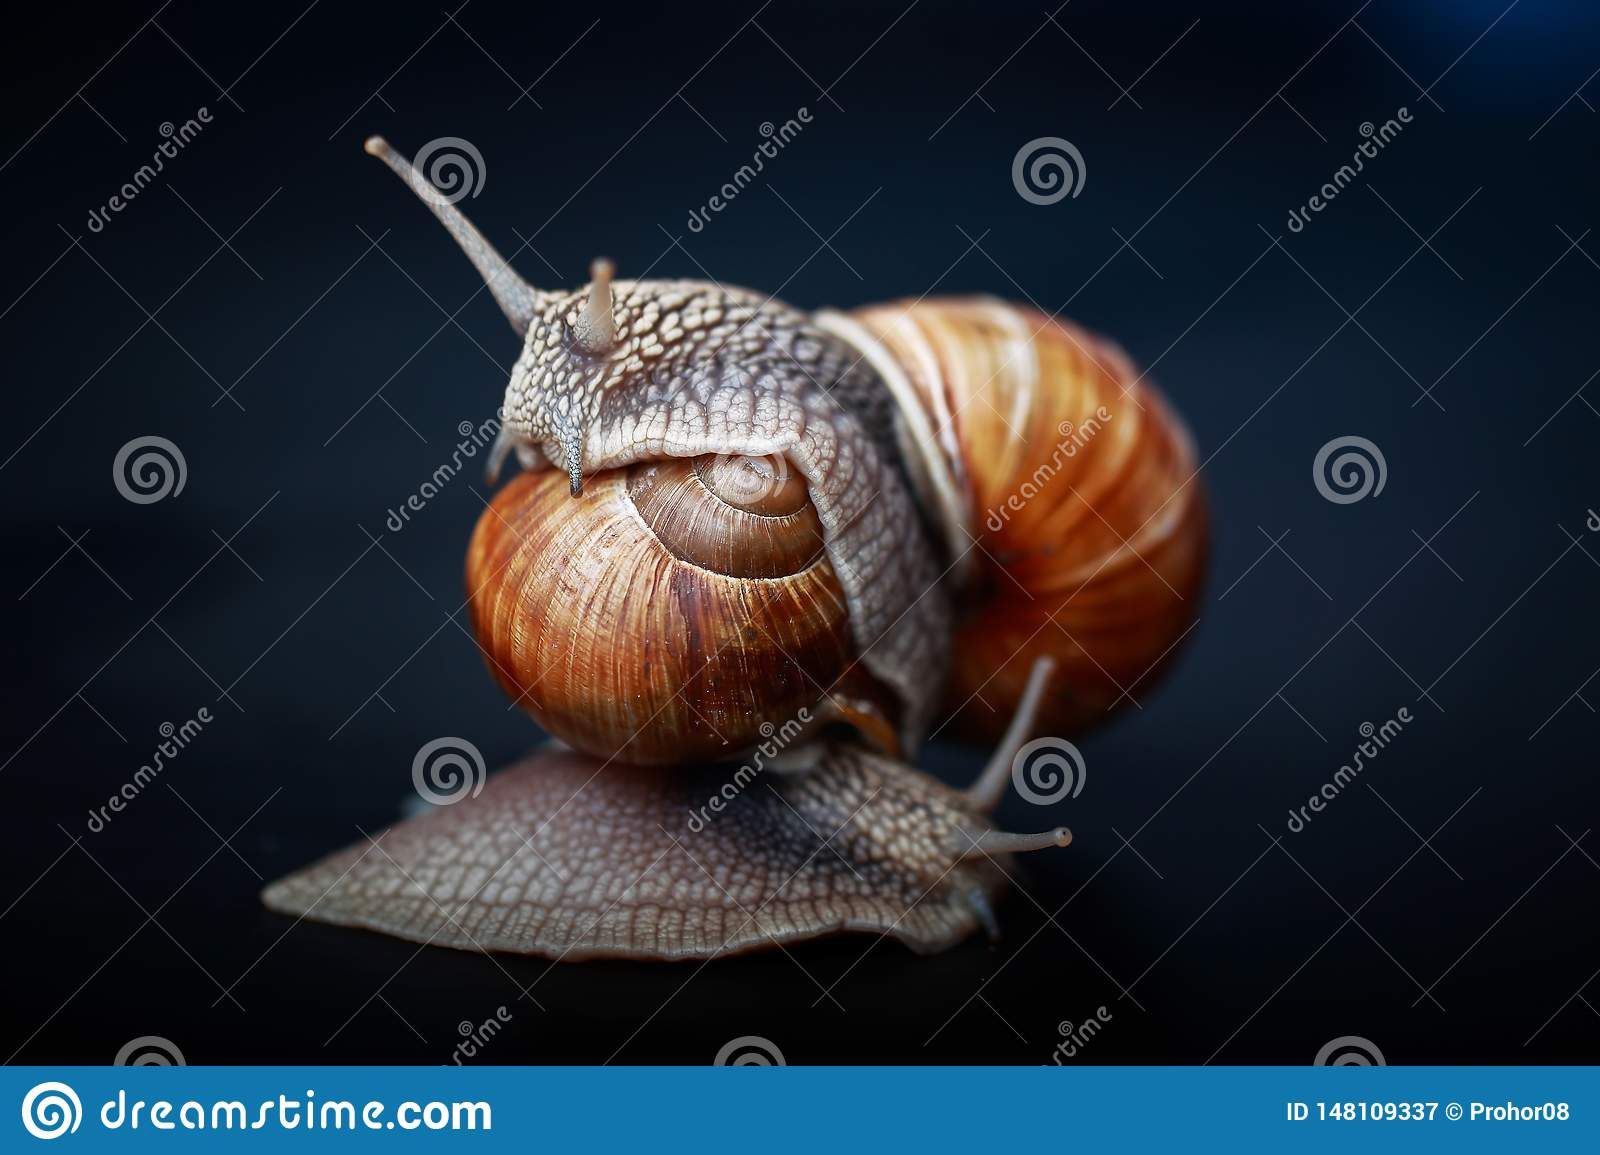 Snails crawling one on one in the studio